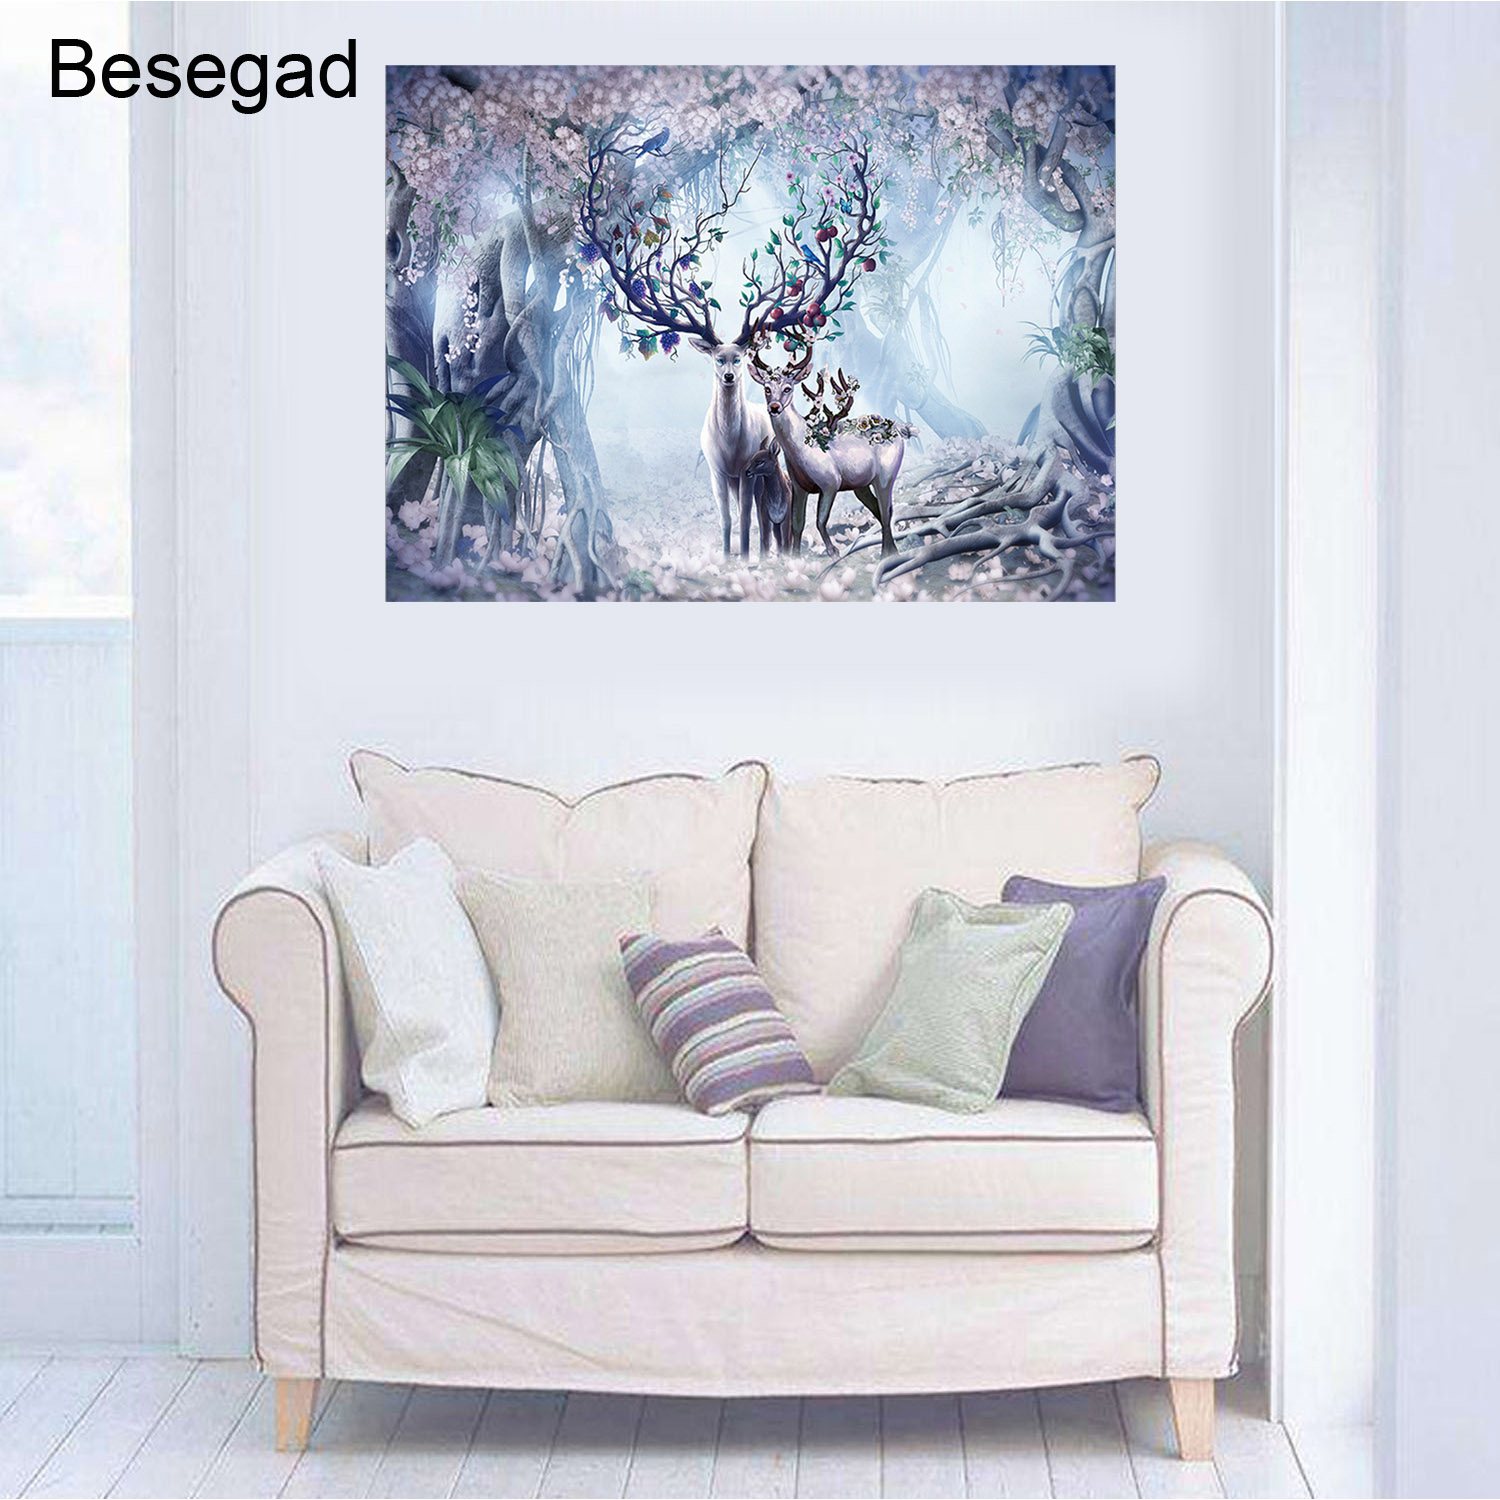 Besegad Kids <font><b>500</b></font> <font><b>Pieces</b></font> <font><b>Puzzles</b></font> Landscape Wood <font><b>Puzzle</b></font> Cartoon Animlal Deer Elk <font><b>Jigsaw</b></font> DIY Creativity <font><b>Puzzle</b></font> Educational Toys image